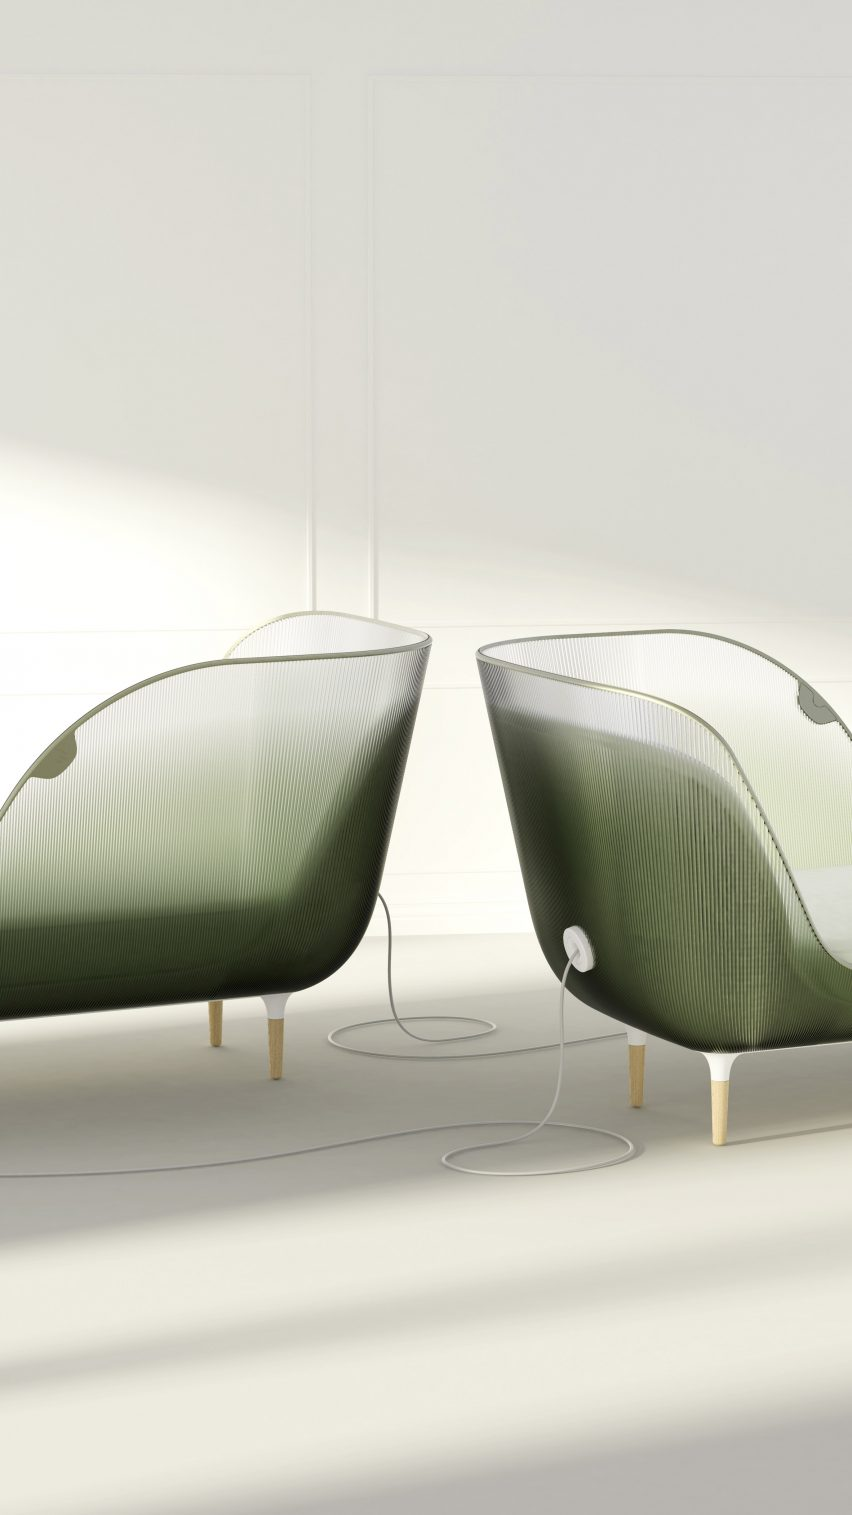 "Seymourpowell's Atmosphère devices surround users in a ""beauty bubble"" to detoxify their surroundings"